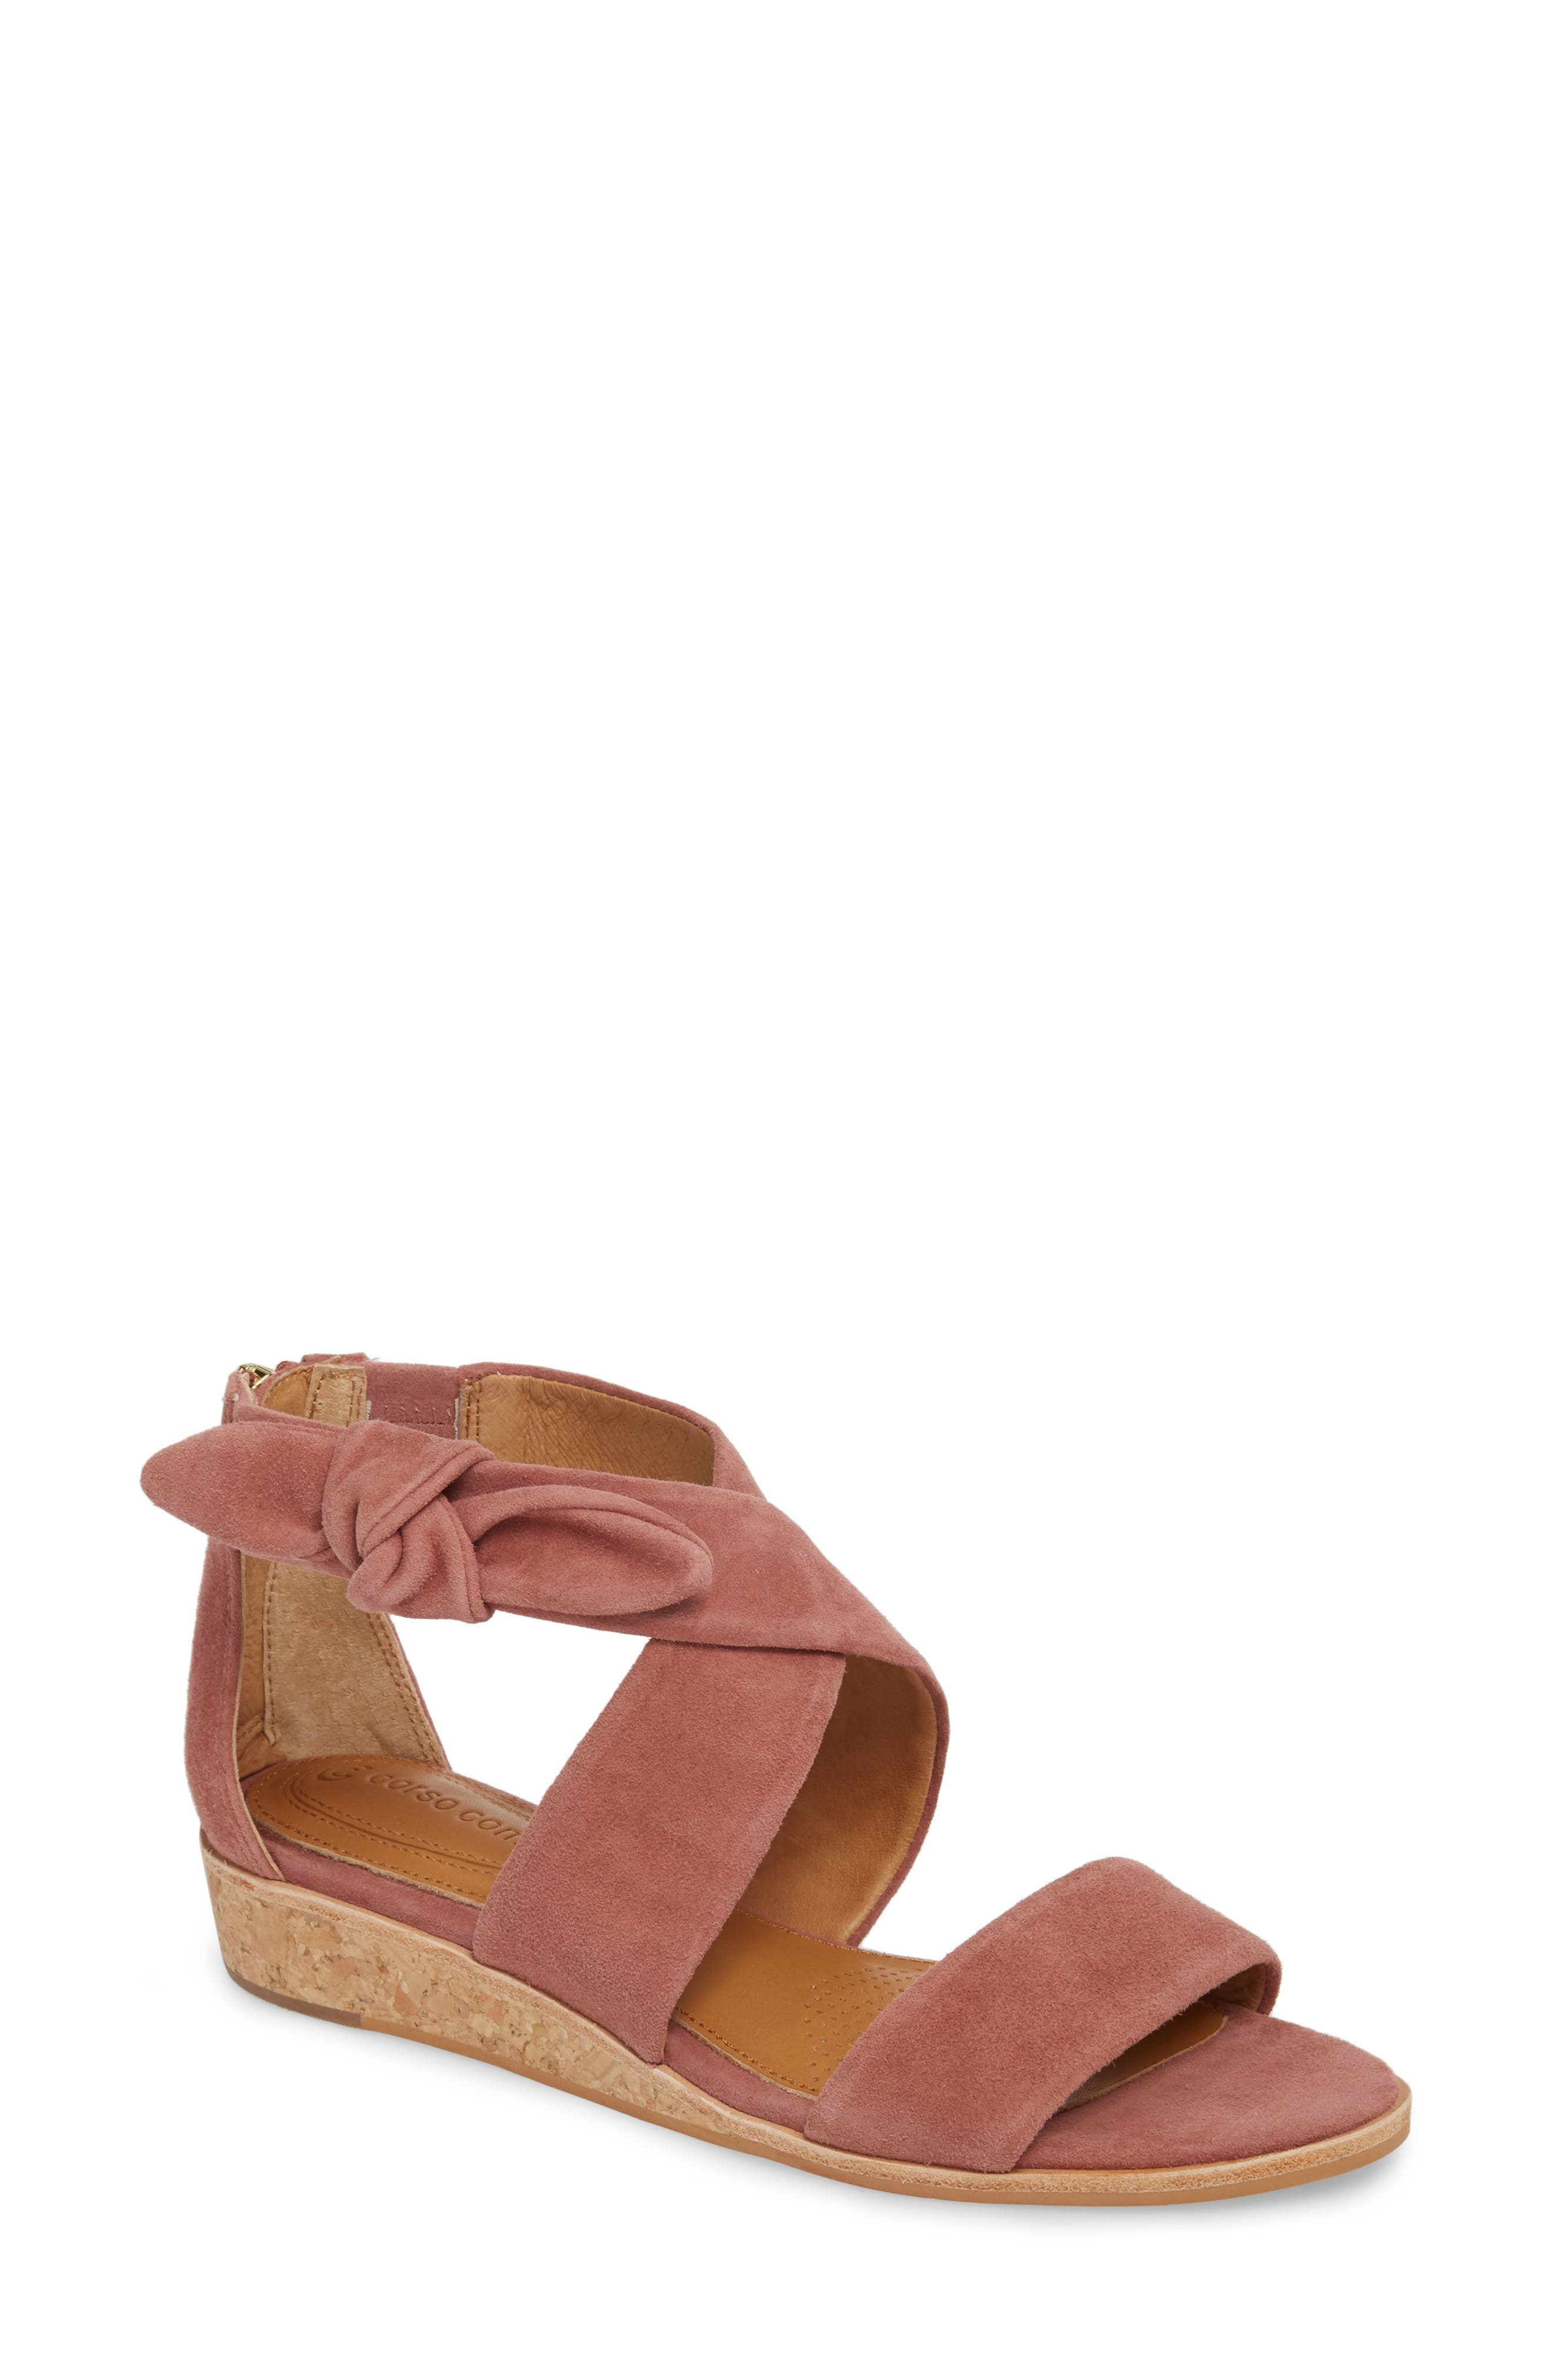 Rasque Sandal,                             Main thumbnail 1, color,                             Old Rose Leather